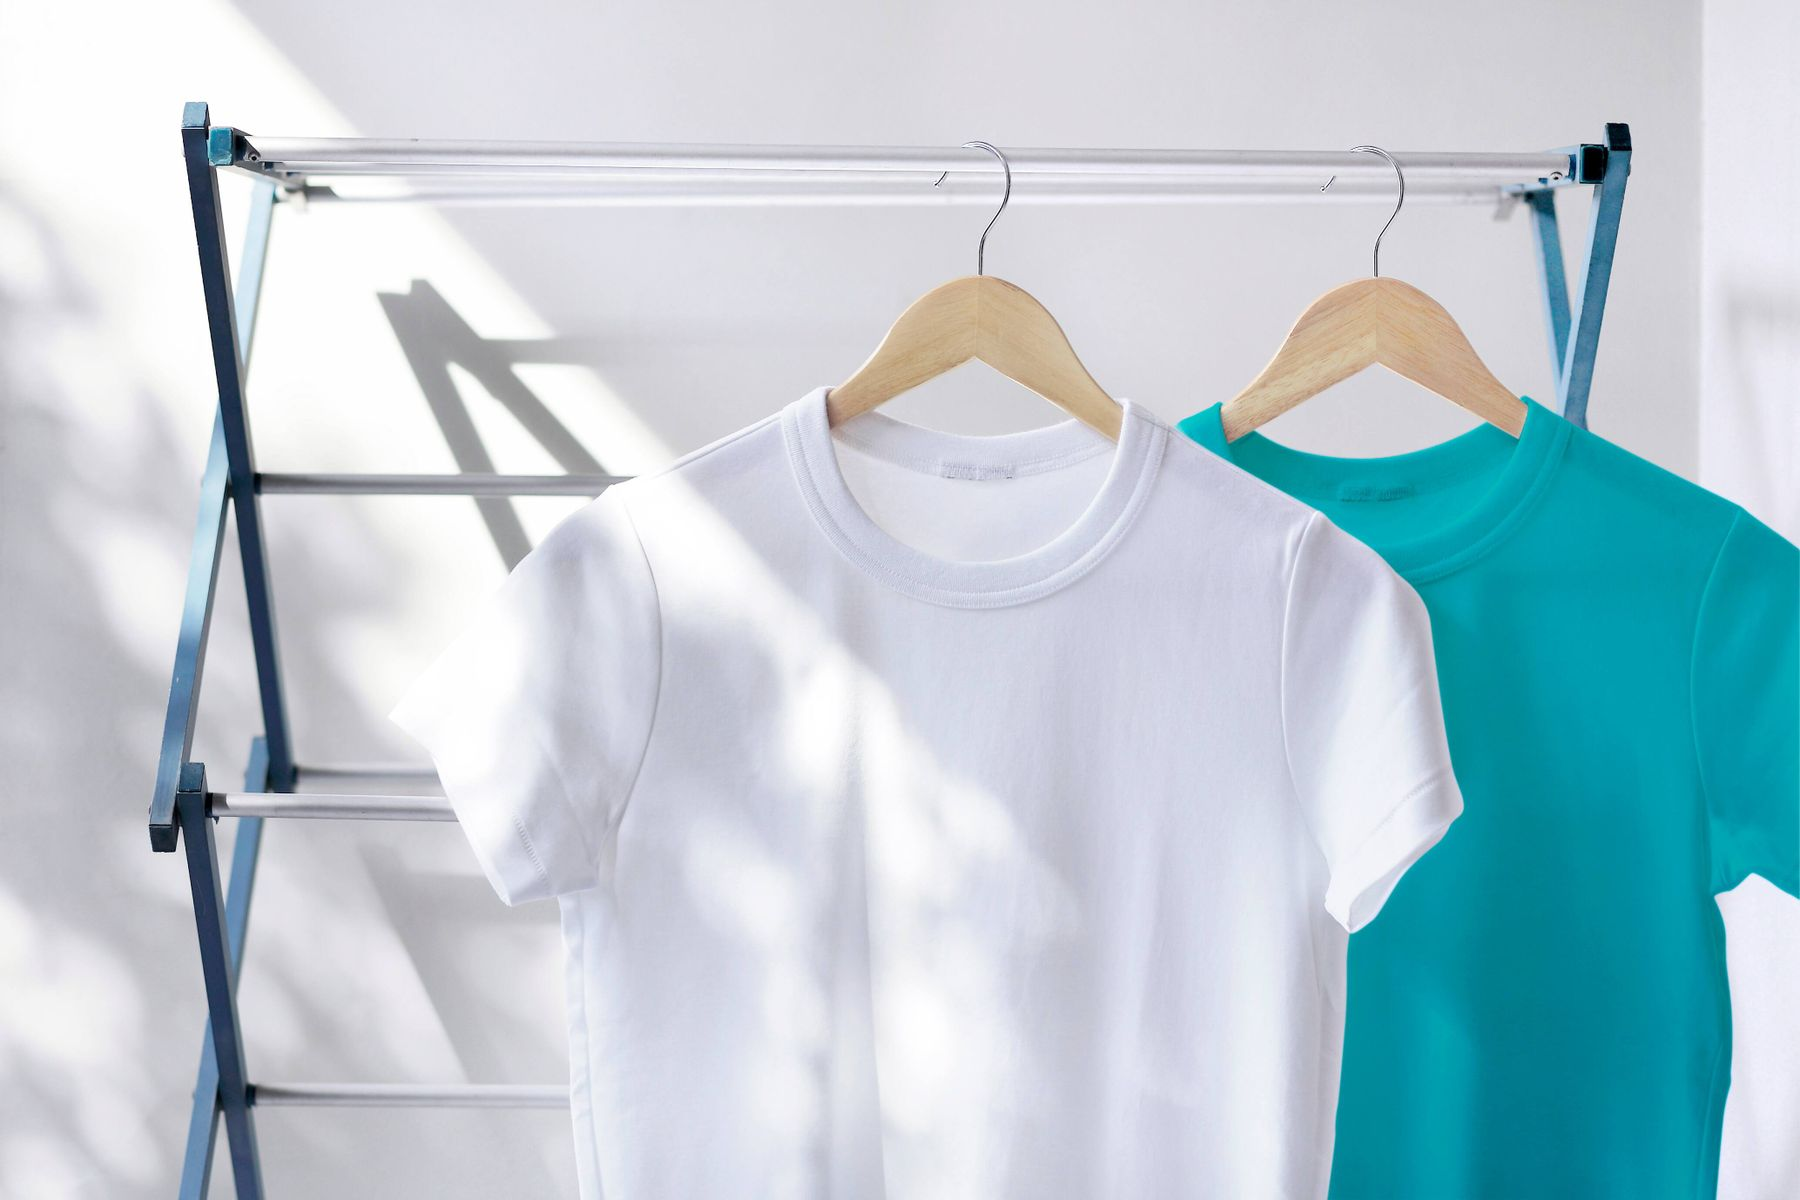 hanging t-shirts in drying rack